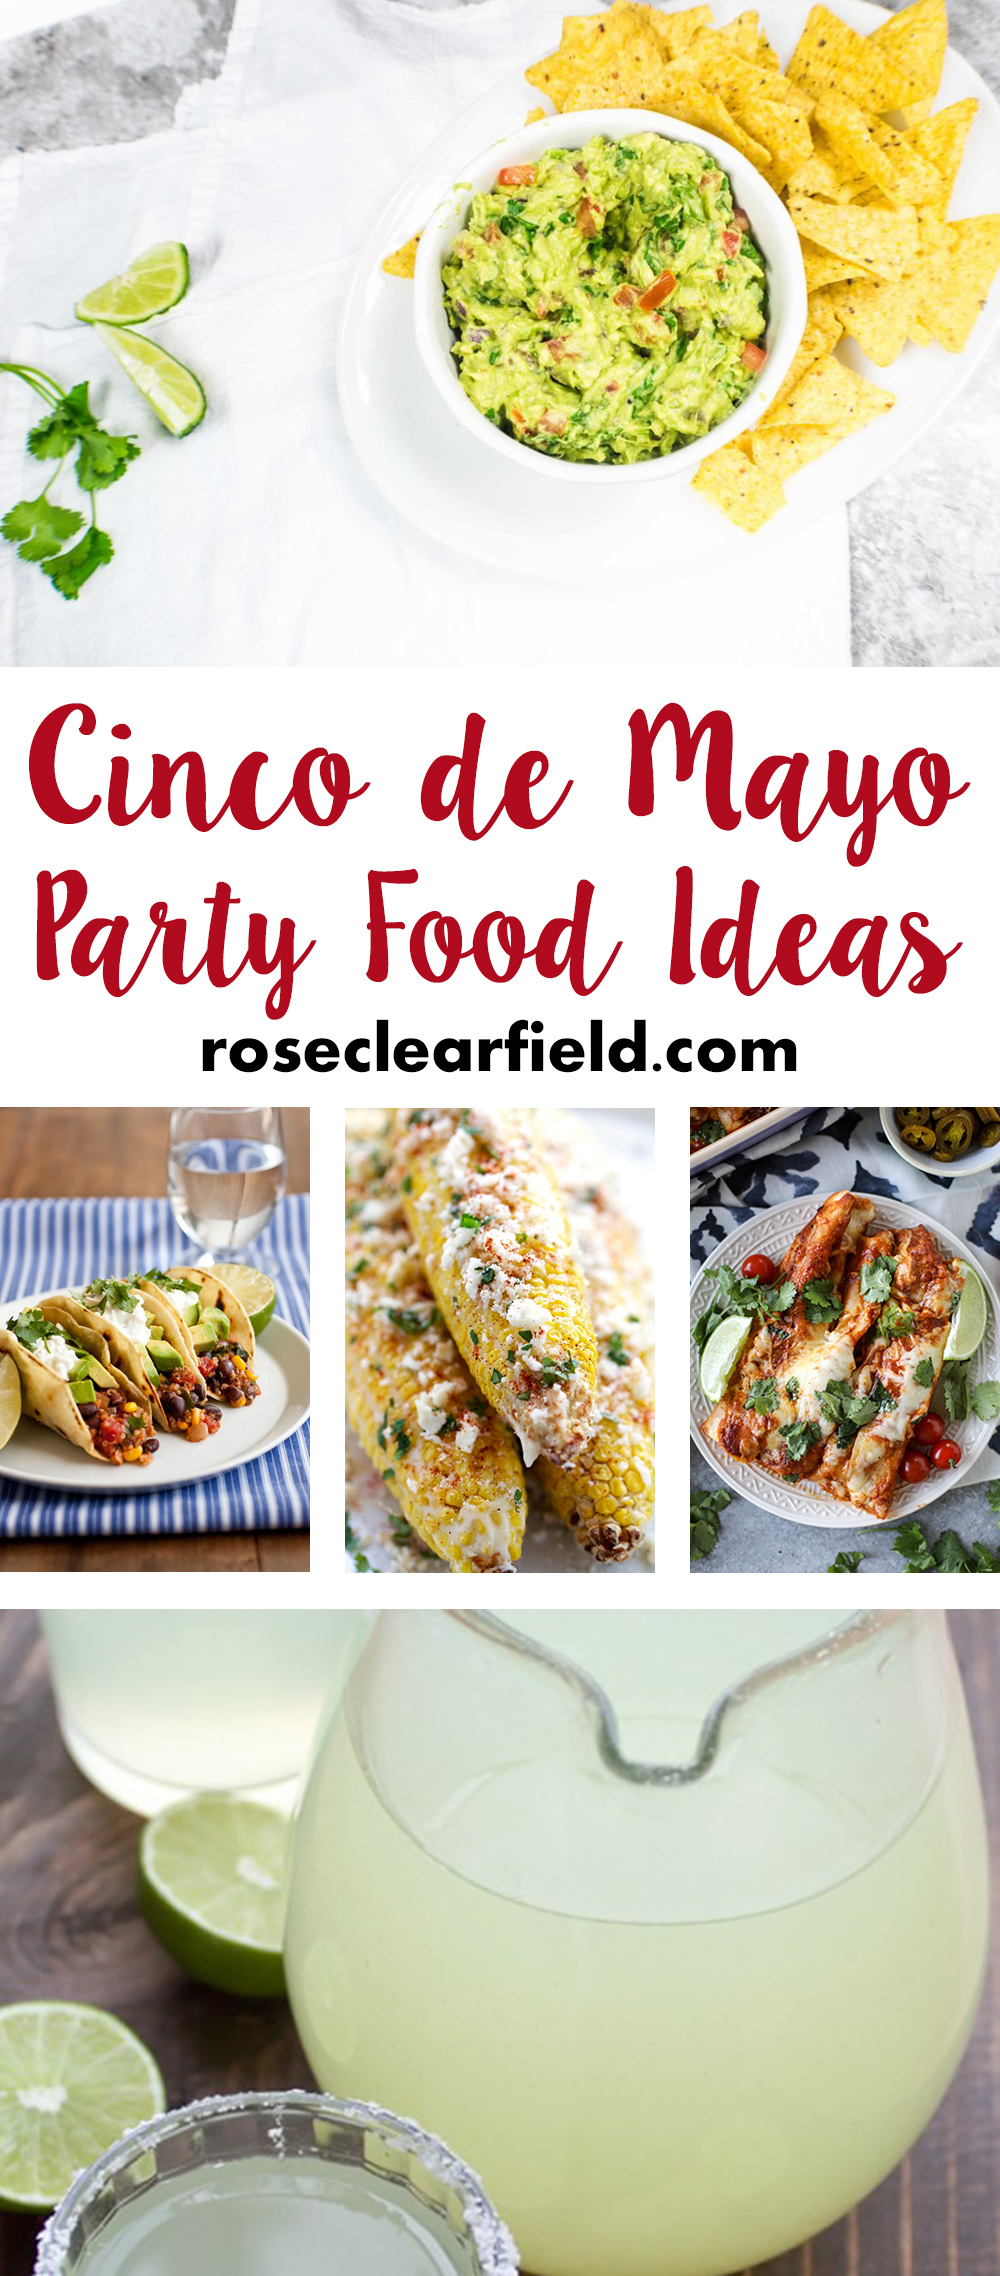 Cinco de mayo party food ideas rose clearfield - Cinco de mayo party decoration ideas ...